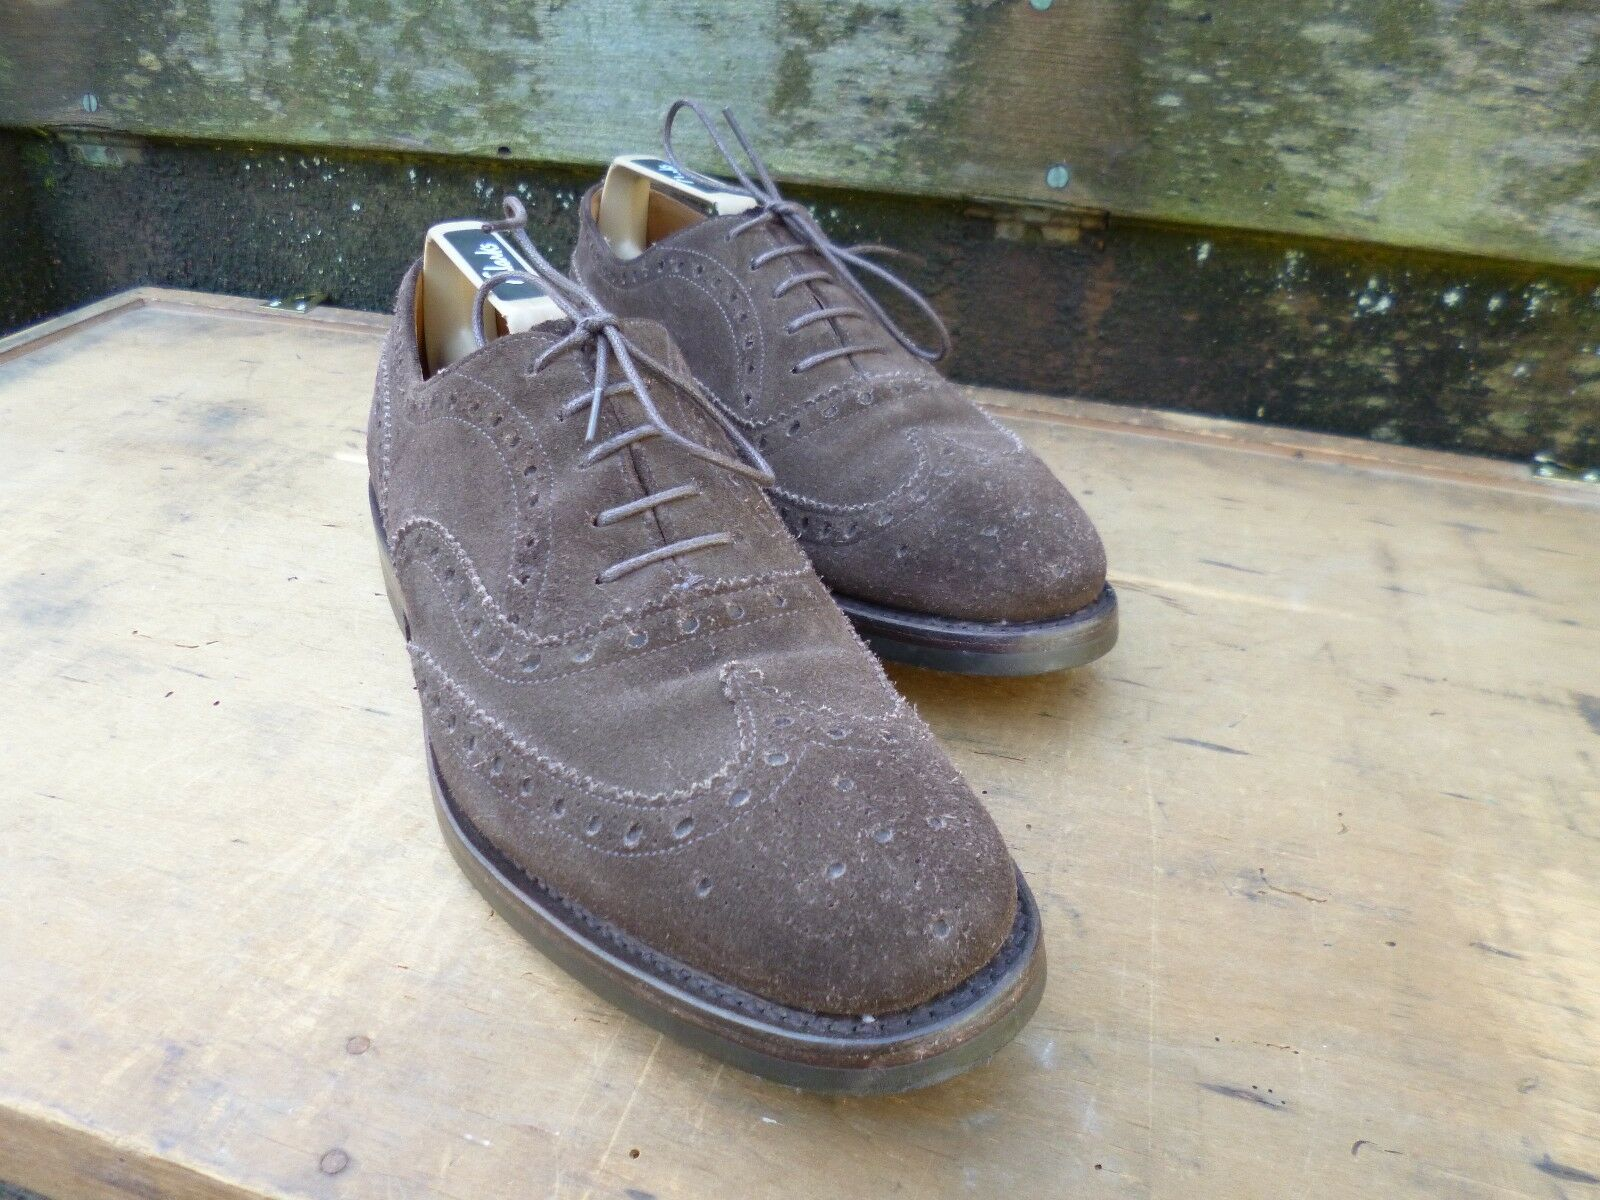 CHURCH BROGUES – BROWN SUEDE - UK 7 – ASHBY - EXCELLENT CONDITION